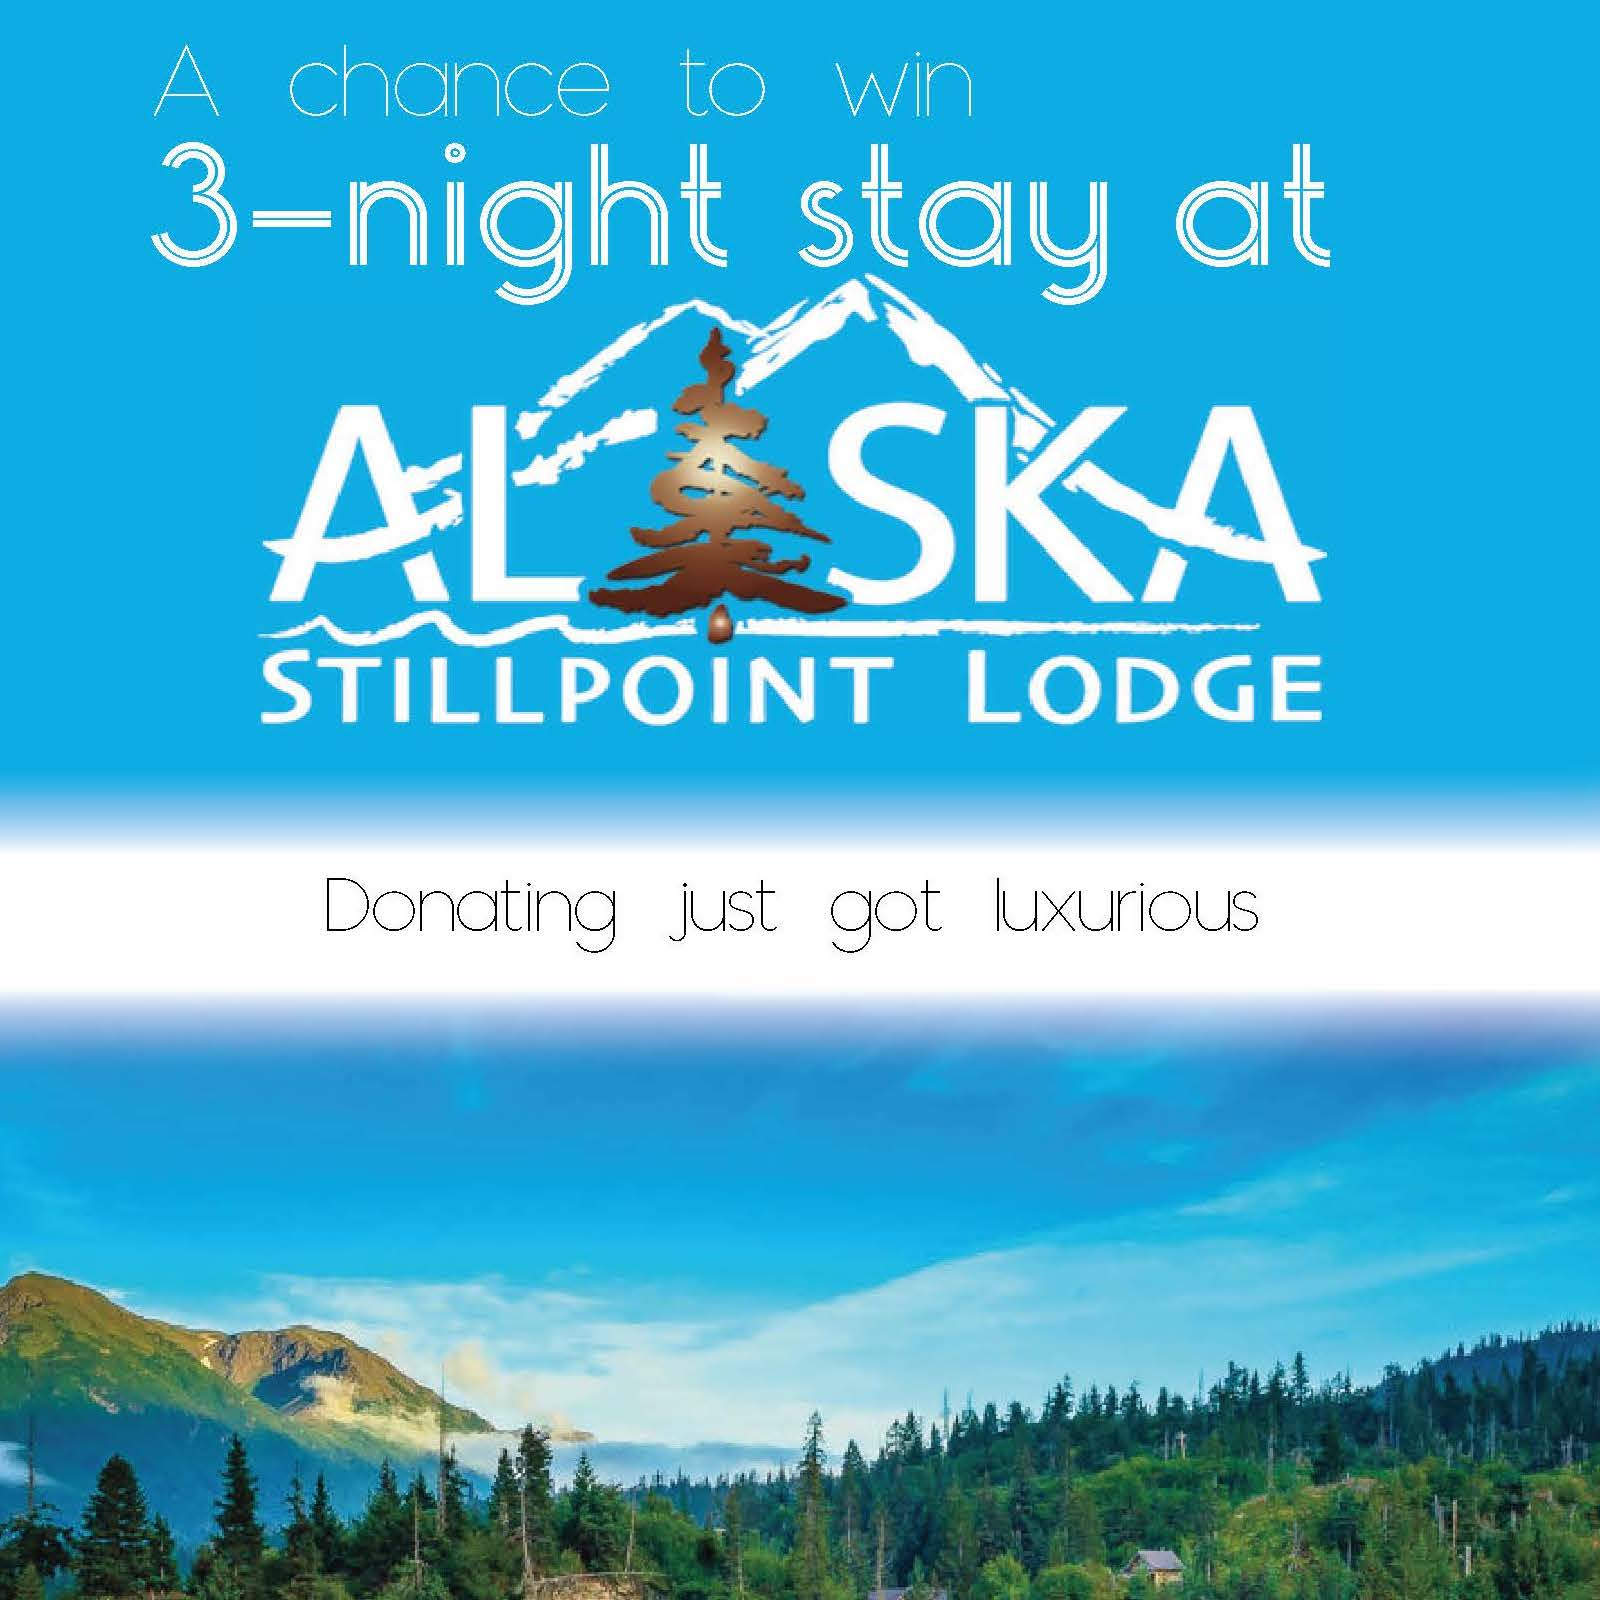 Stillpoint Lodge Raffle Drawing On Friday, 12/20